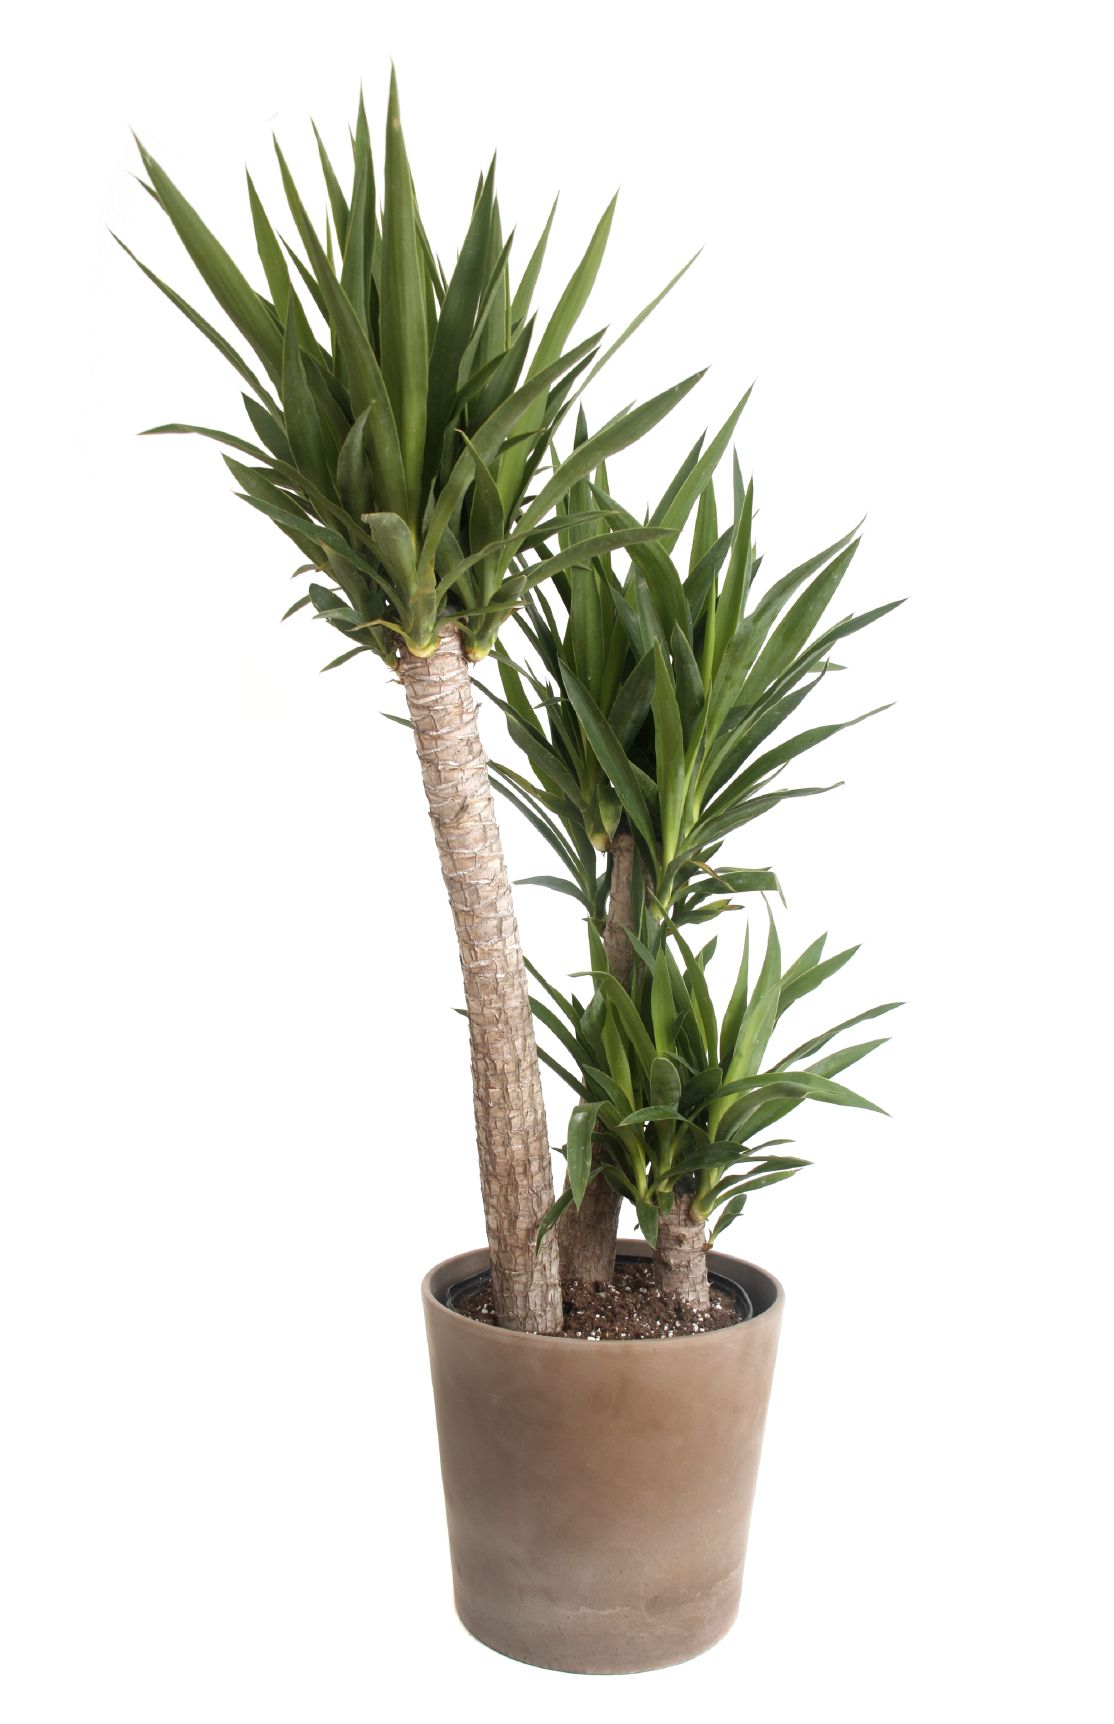 Should I Repot Yucca - Repotting Yucca Houseplants And ...